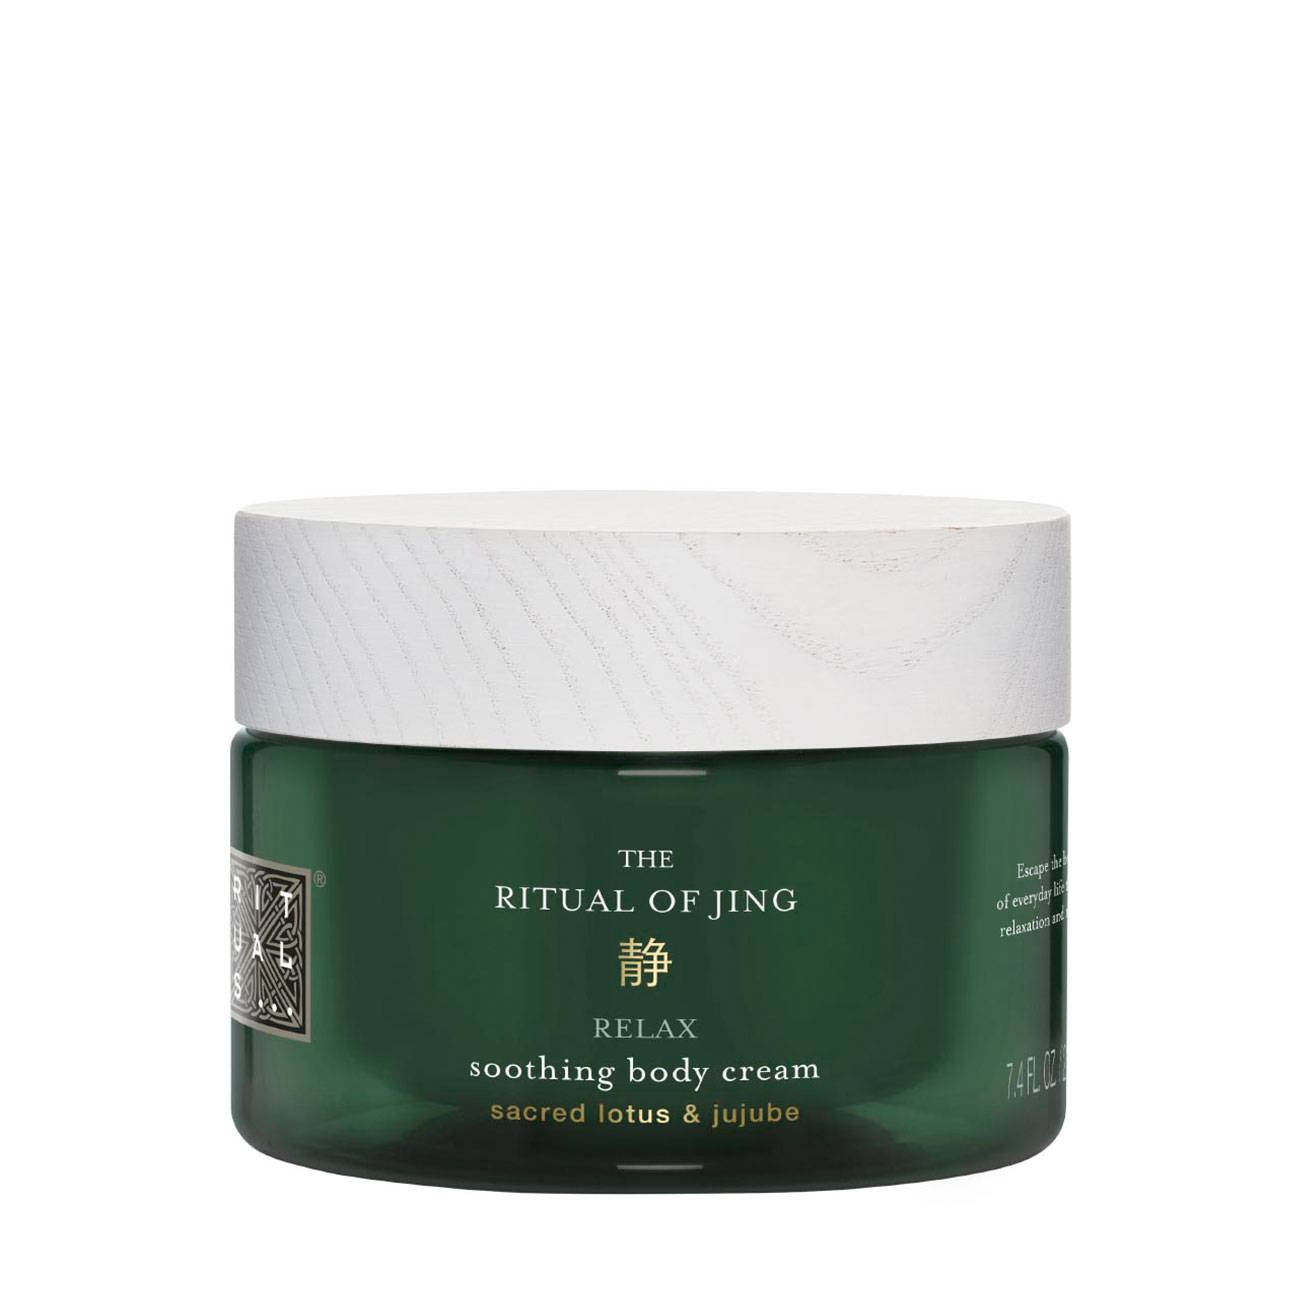 THE RITUAL OF JING BODY CREAM 220ml poza noua